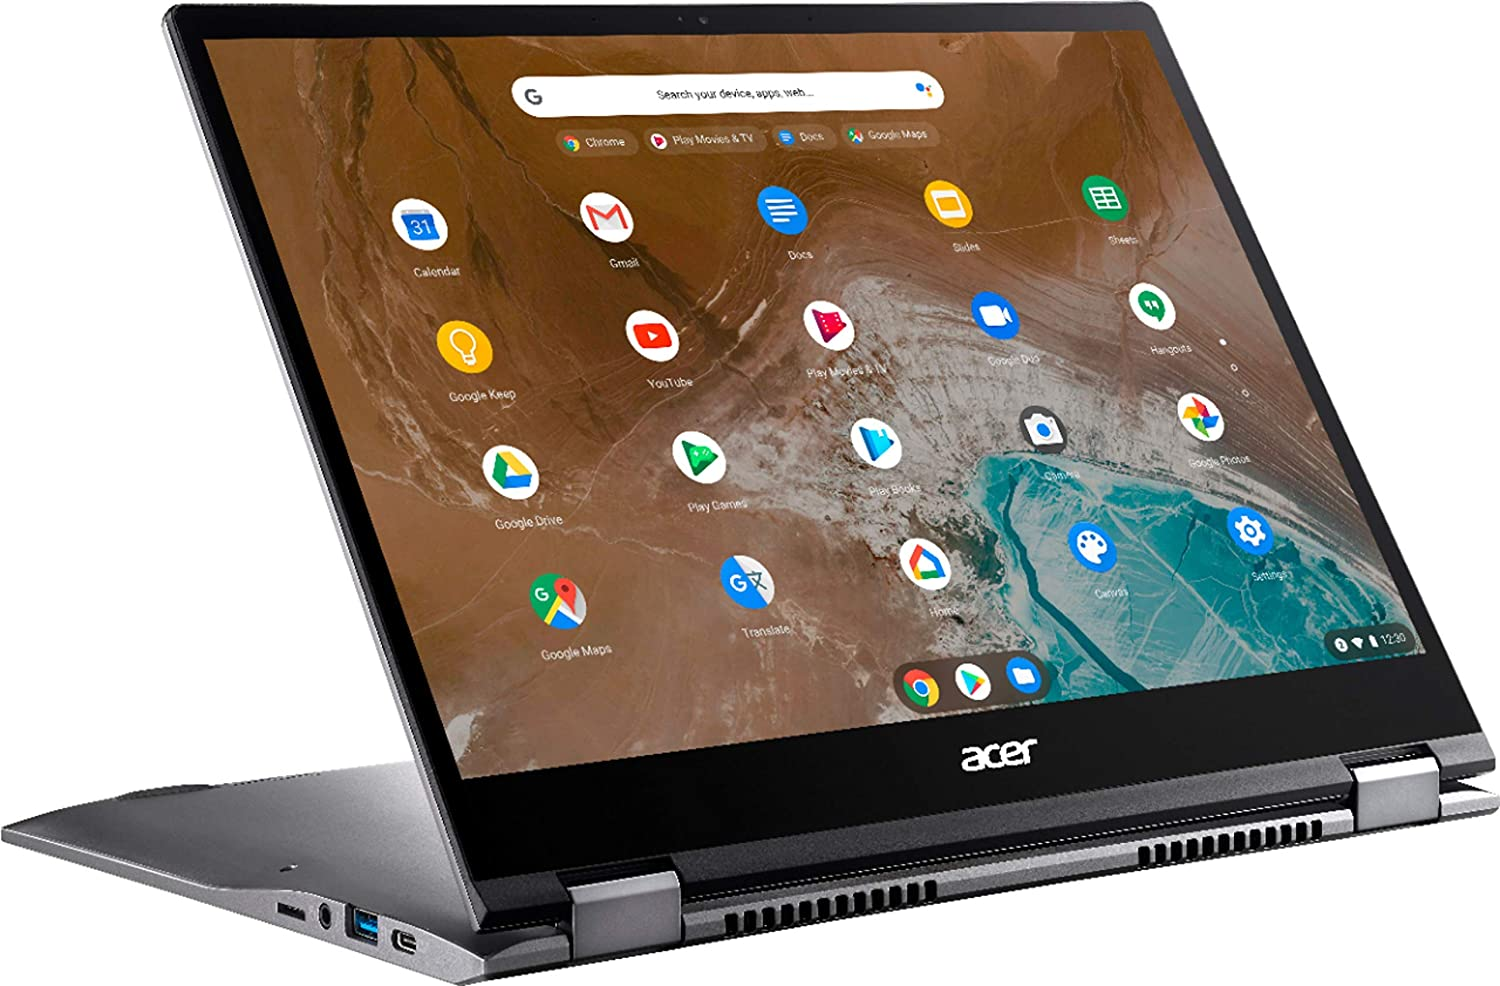 Acer Chromebook Spin 713 2-in-1 13.5in 2K LED Touch Screen Intel i5-10210U up to 4.2GHz 8GB Memory 128GB SSD Backlit Keyboard Steel Gray (Renewed)